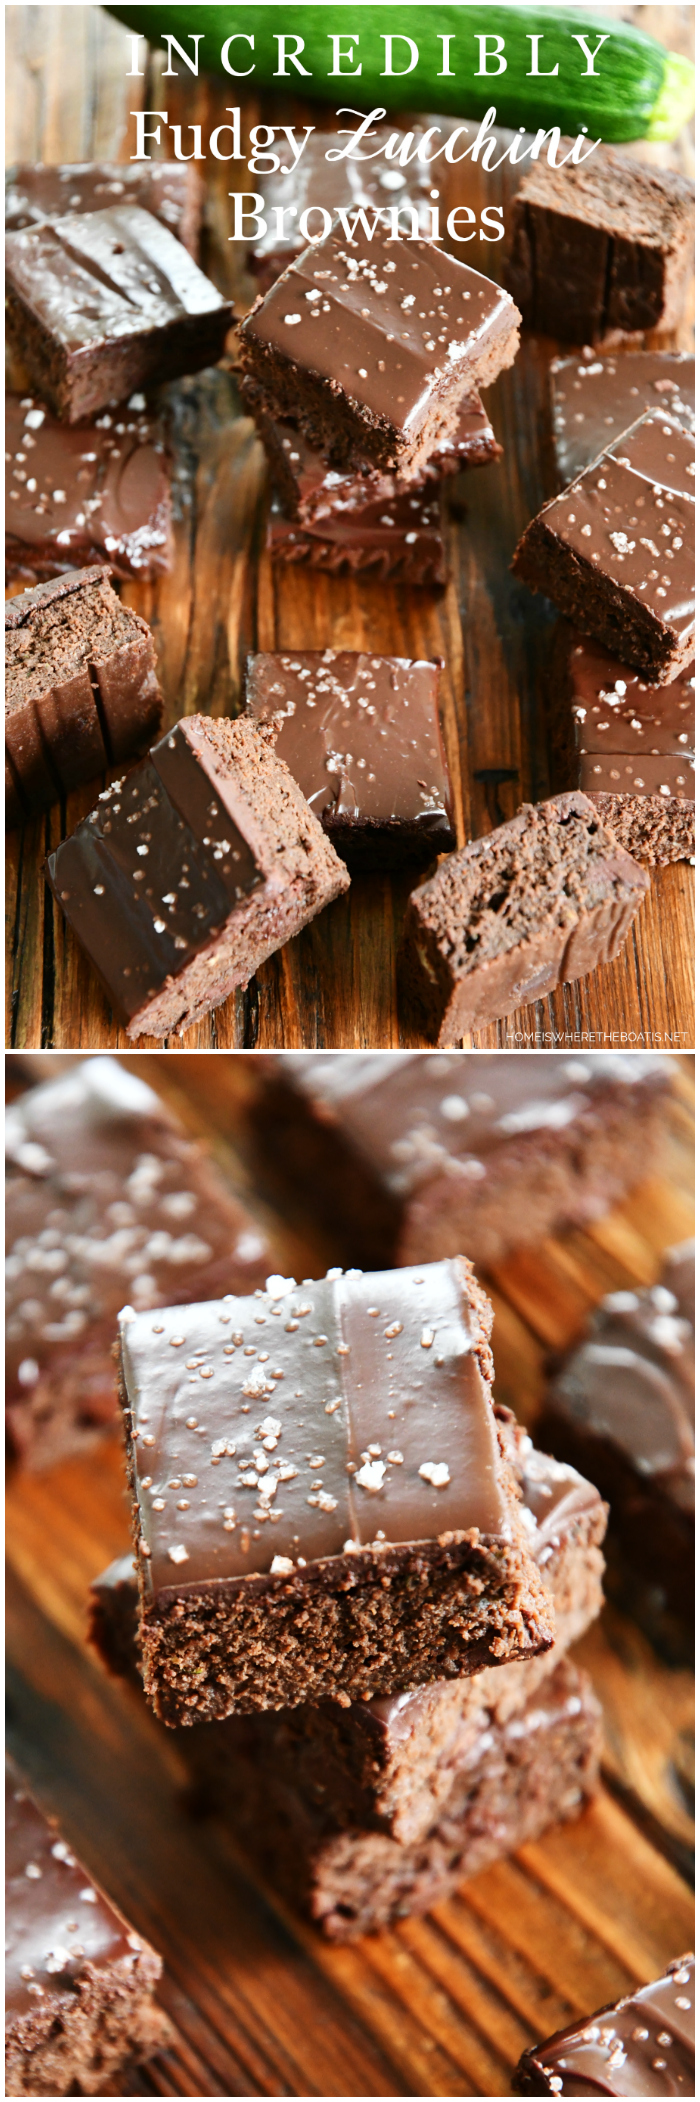 Incredibly Fudgy Zucchini Brownies | ©homeiswheretheboatis.net #brownies #recipes #zucchini